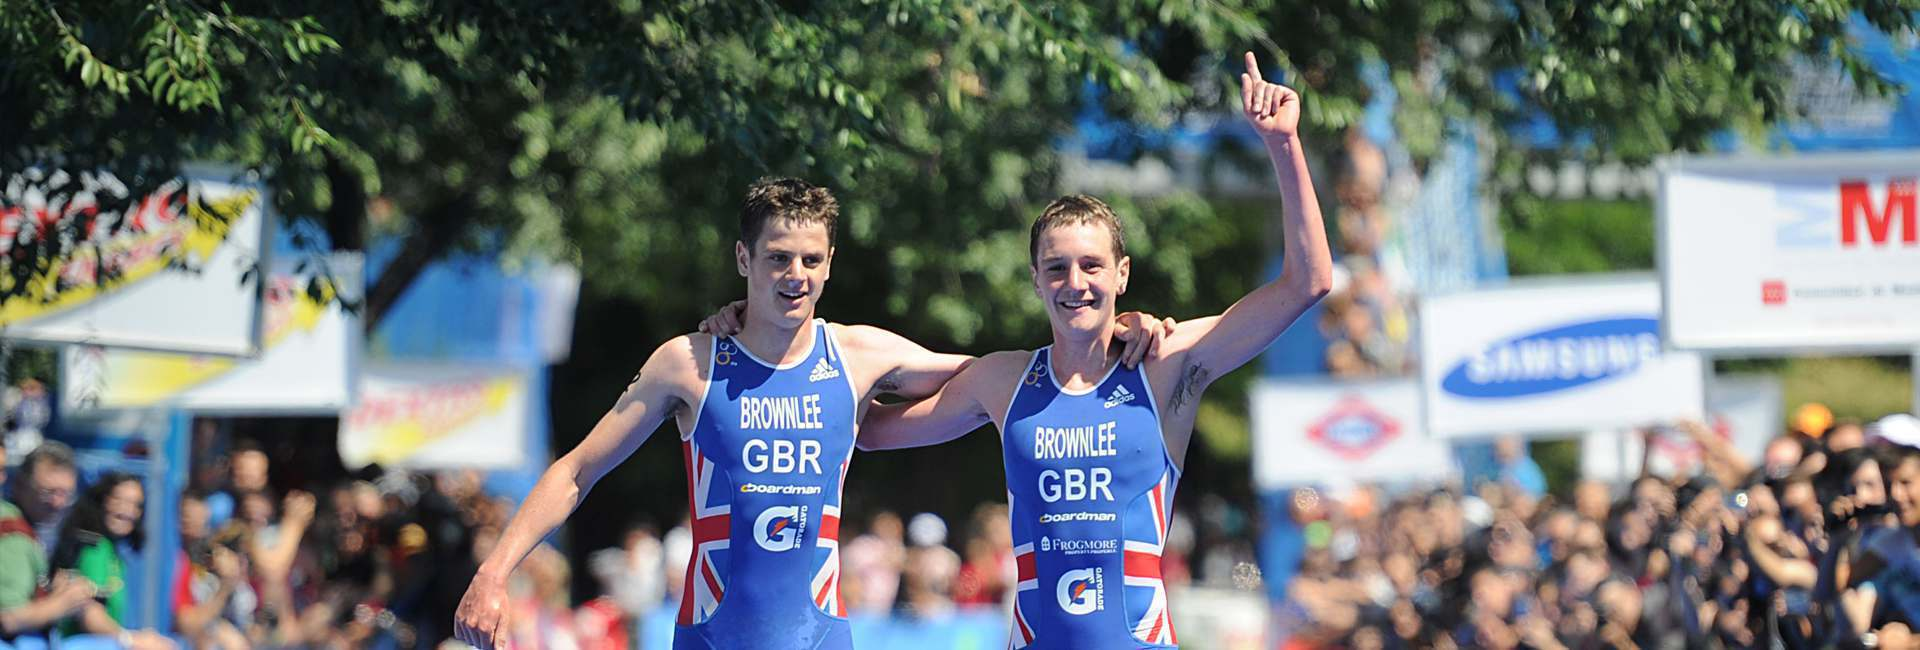 Team GB Completing a marathon as a team